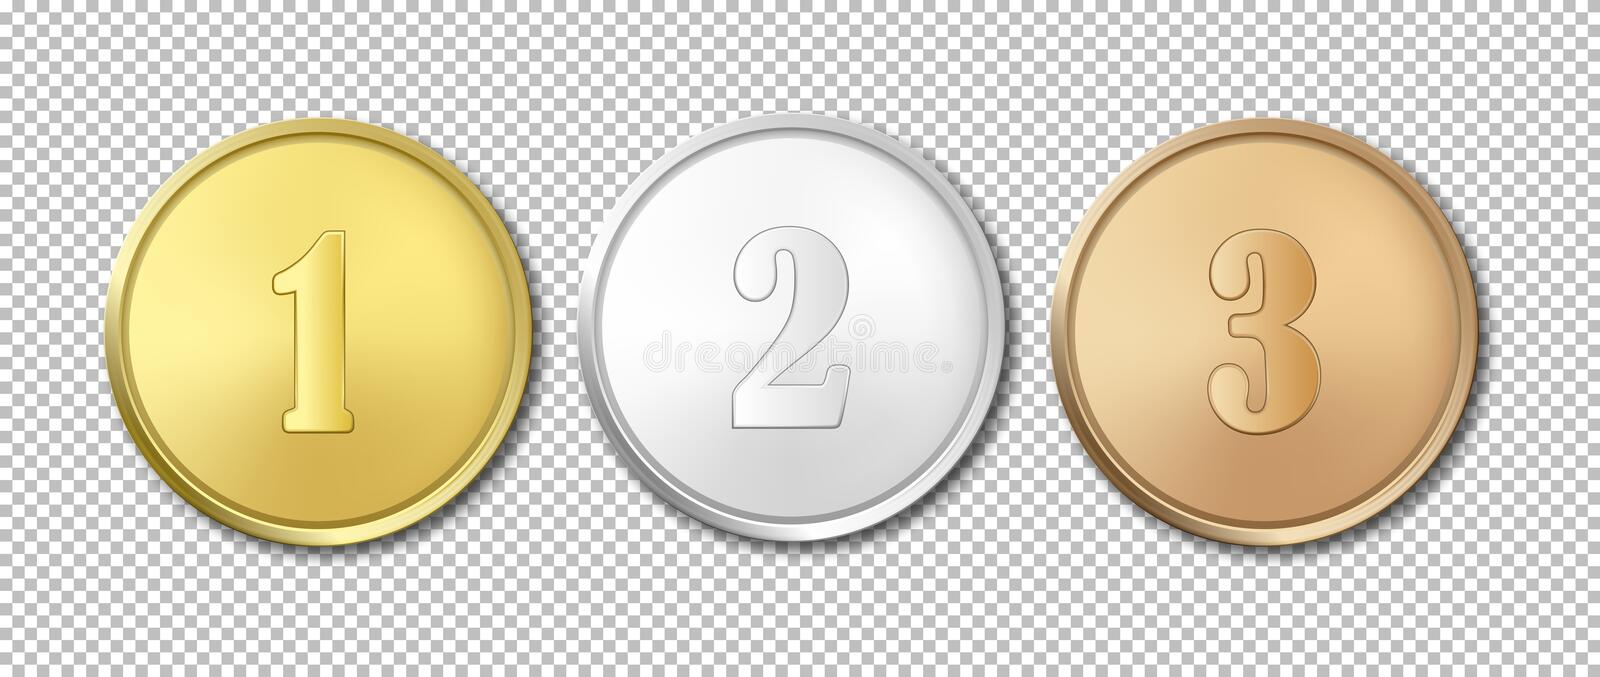 Realistic vector gold, silver and bronze award medals icon set isolated on transparent background. Design templates. The stock illustration